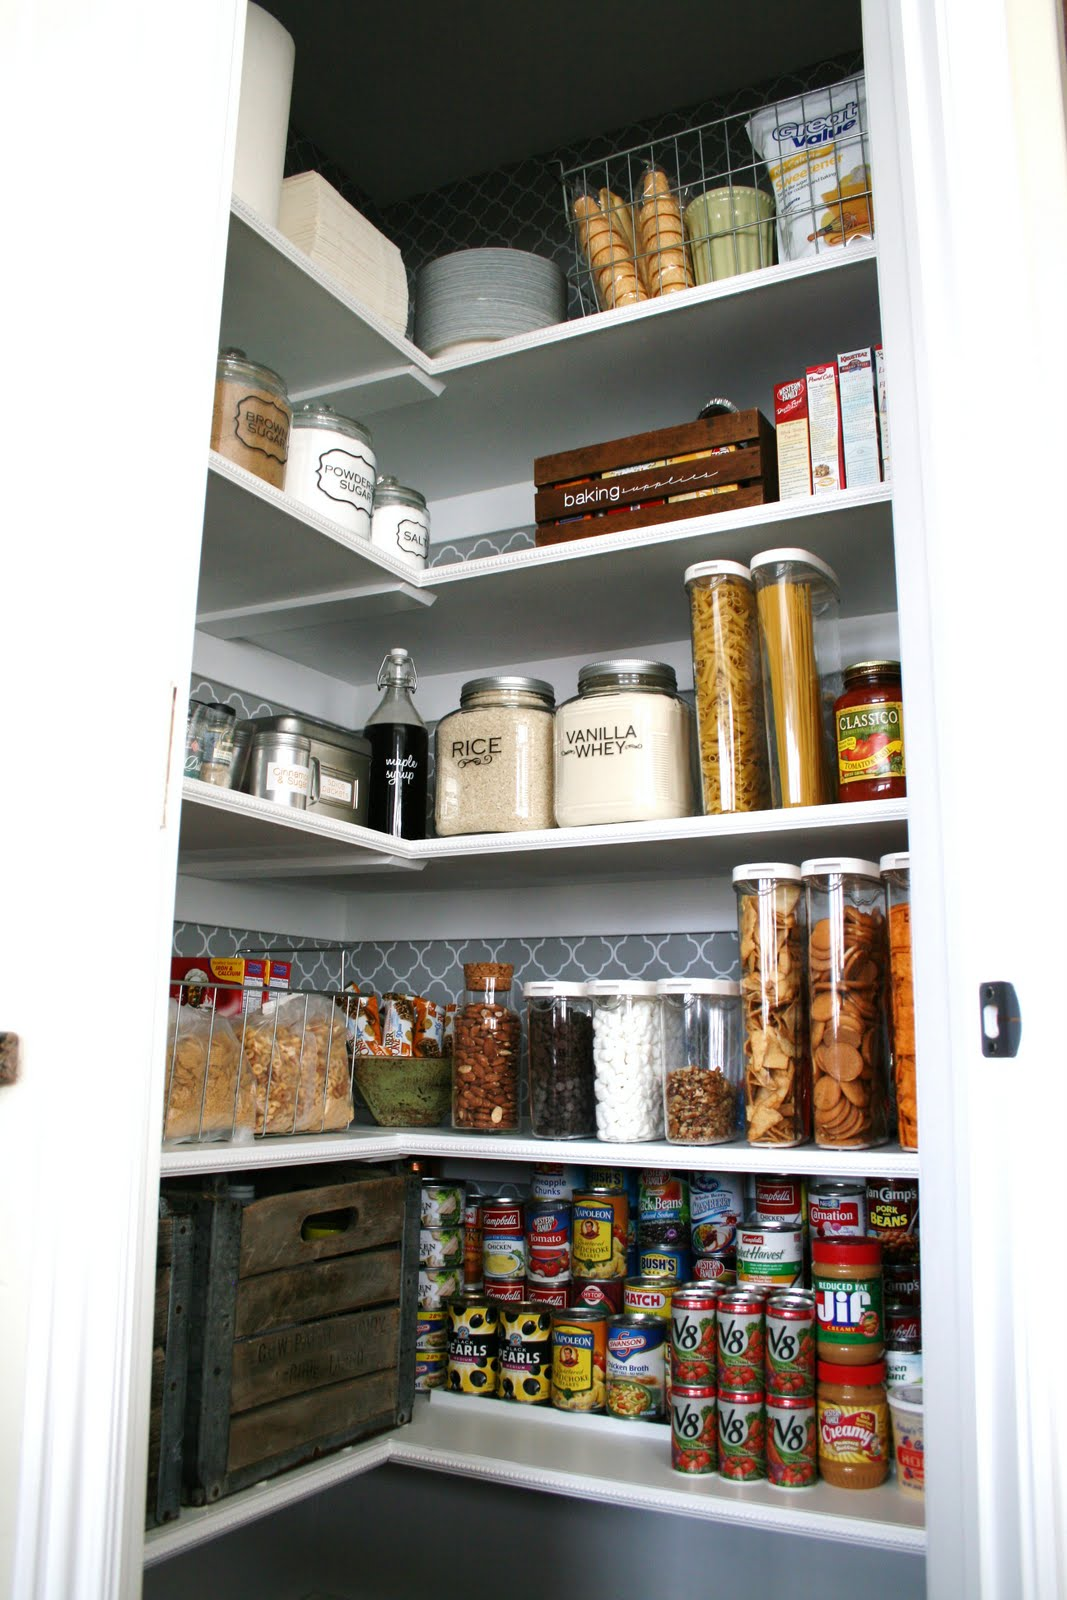 Populaire How to Organize and Spruce Up Your Pantry KQ25